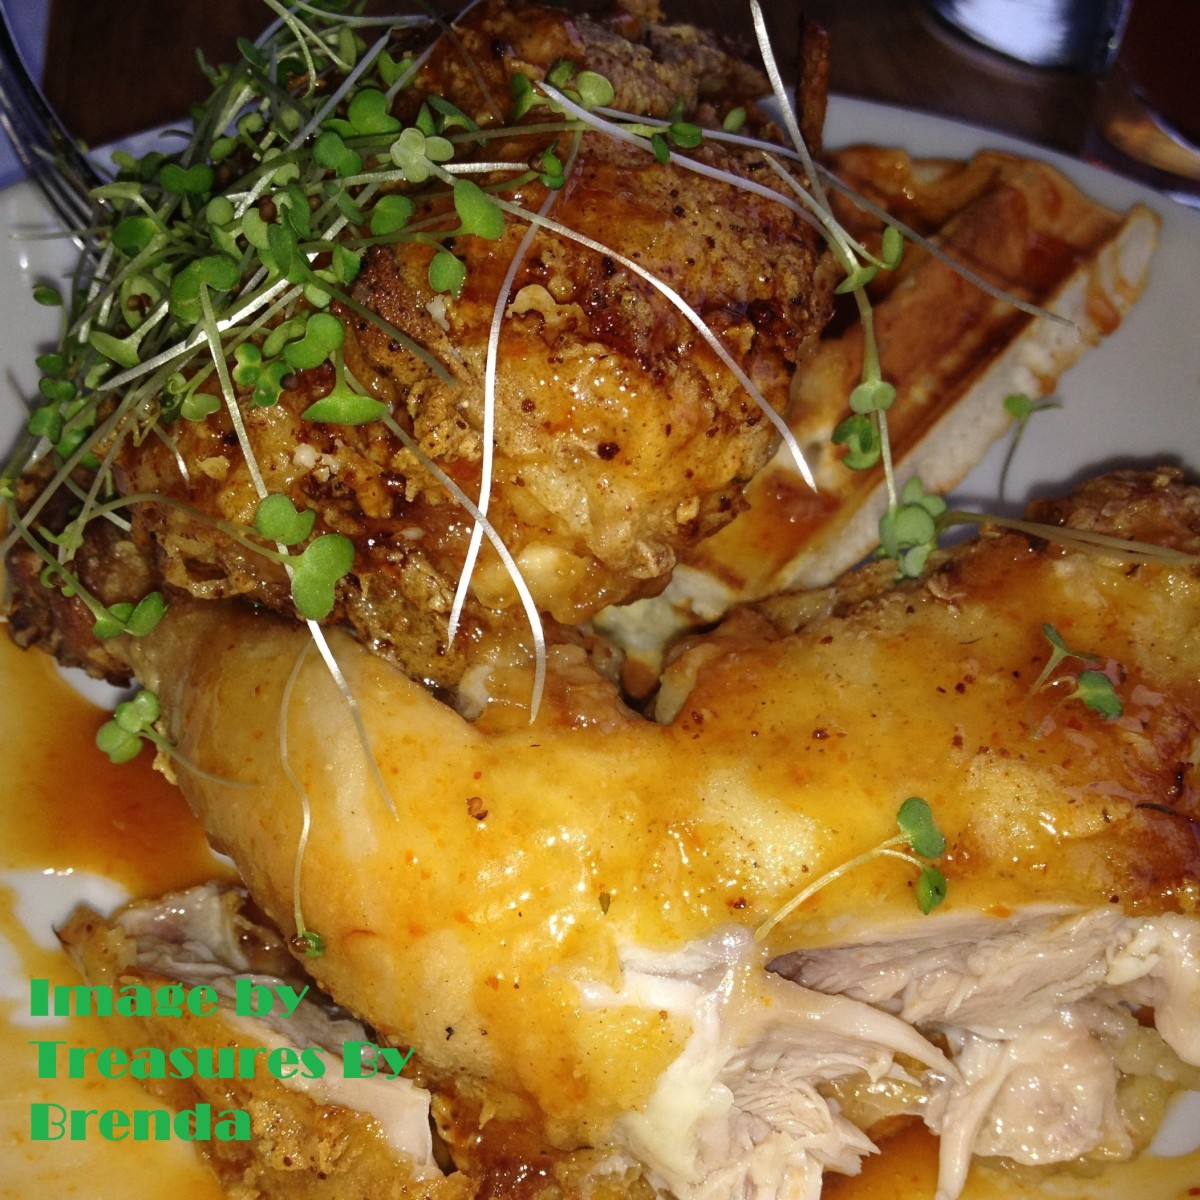 Chicken and Waffles from Hooch Bourton House